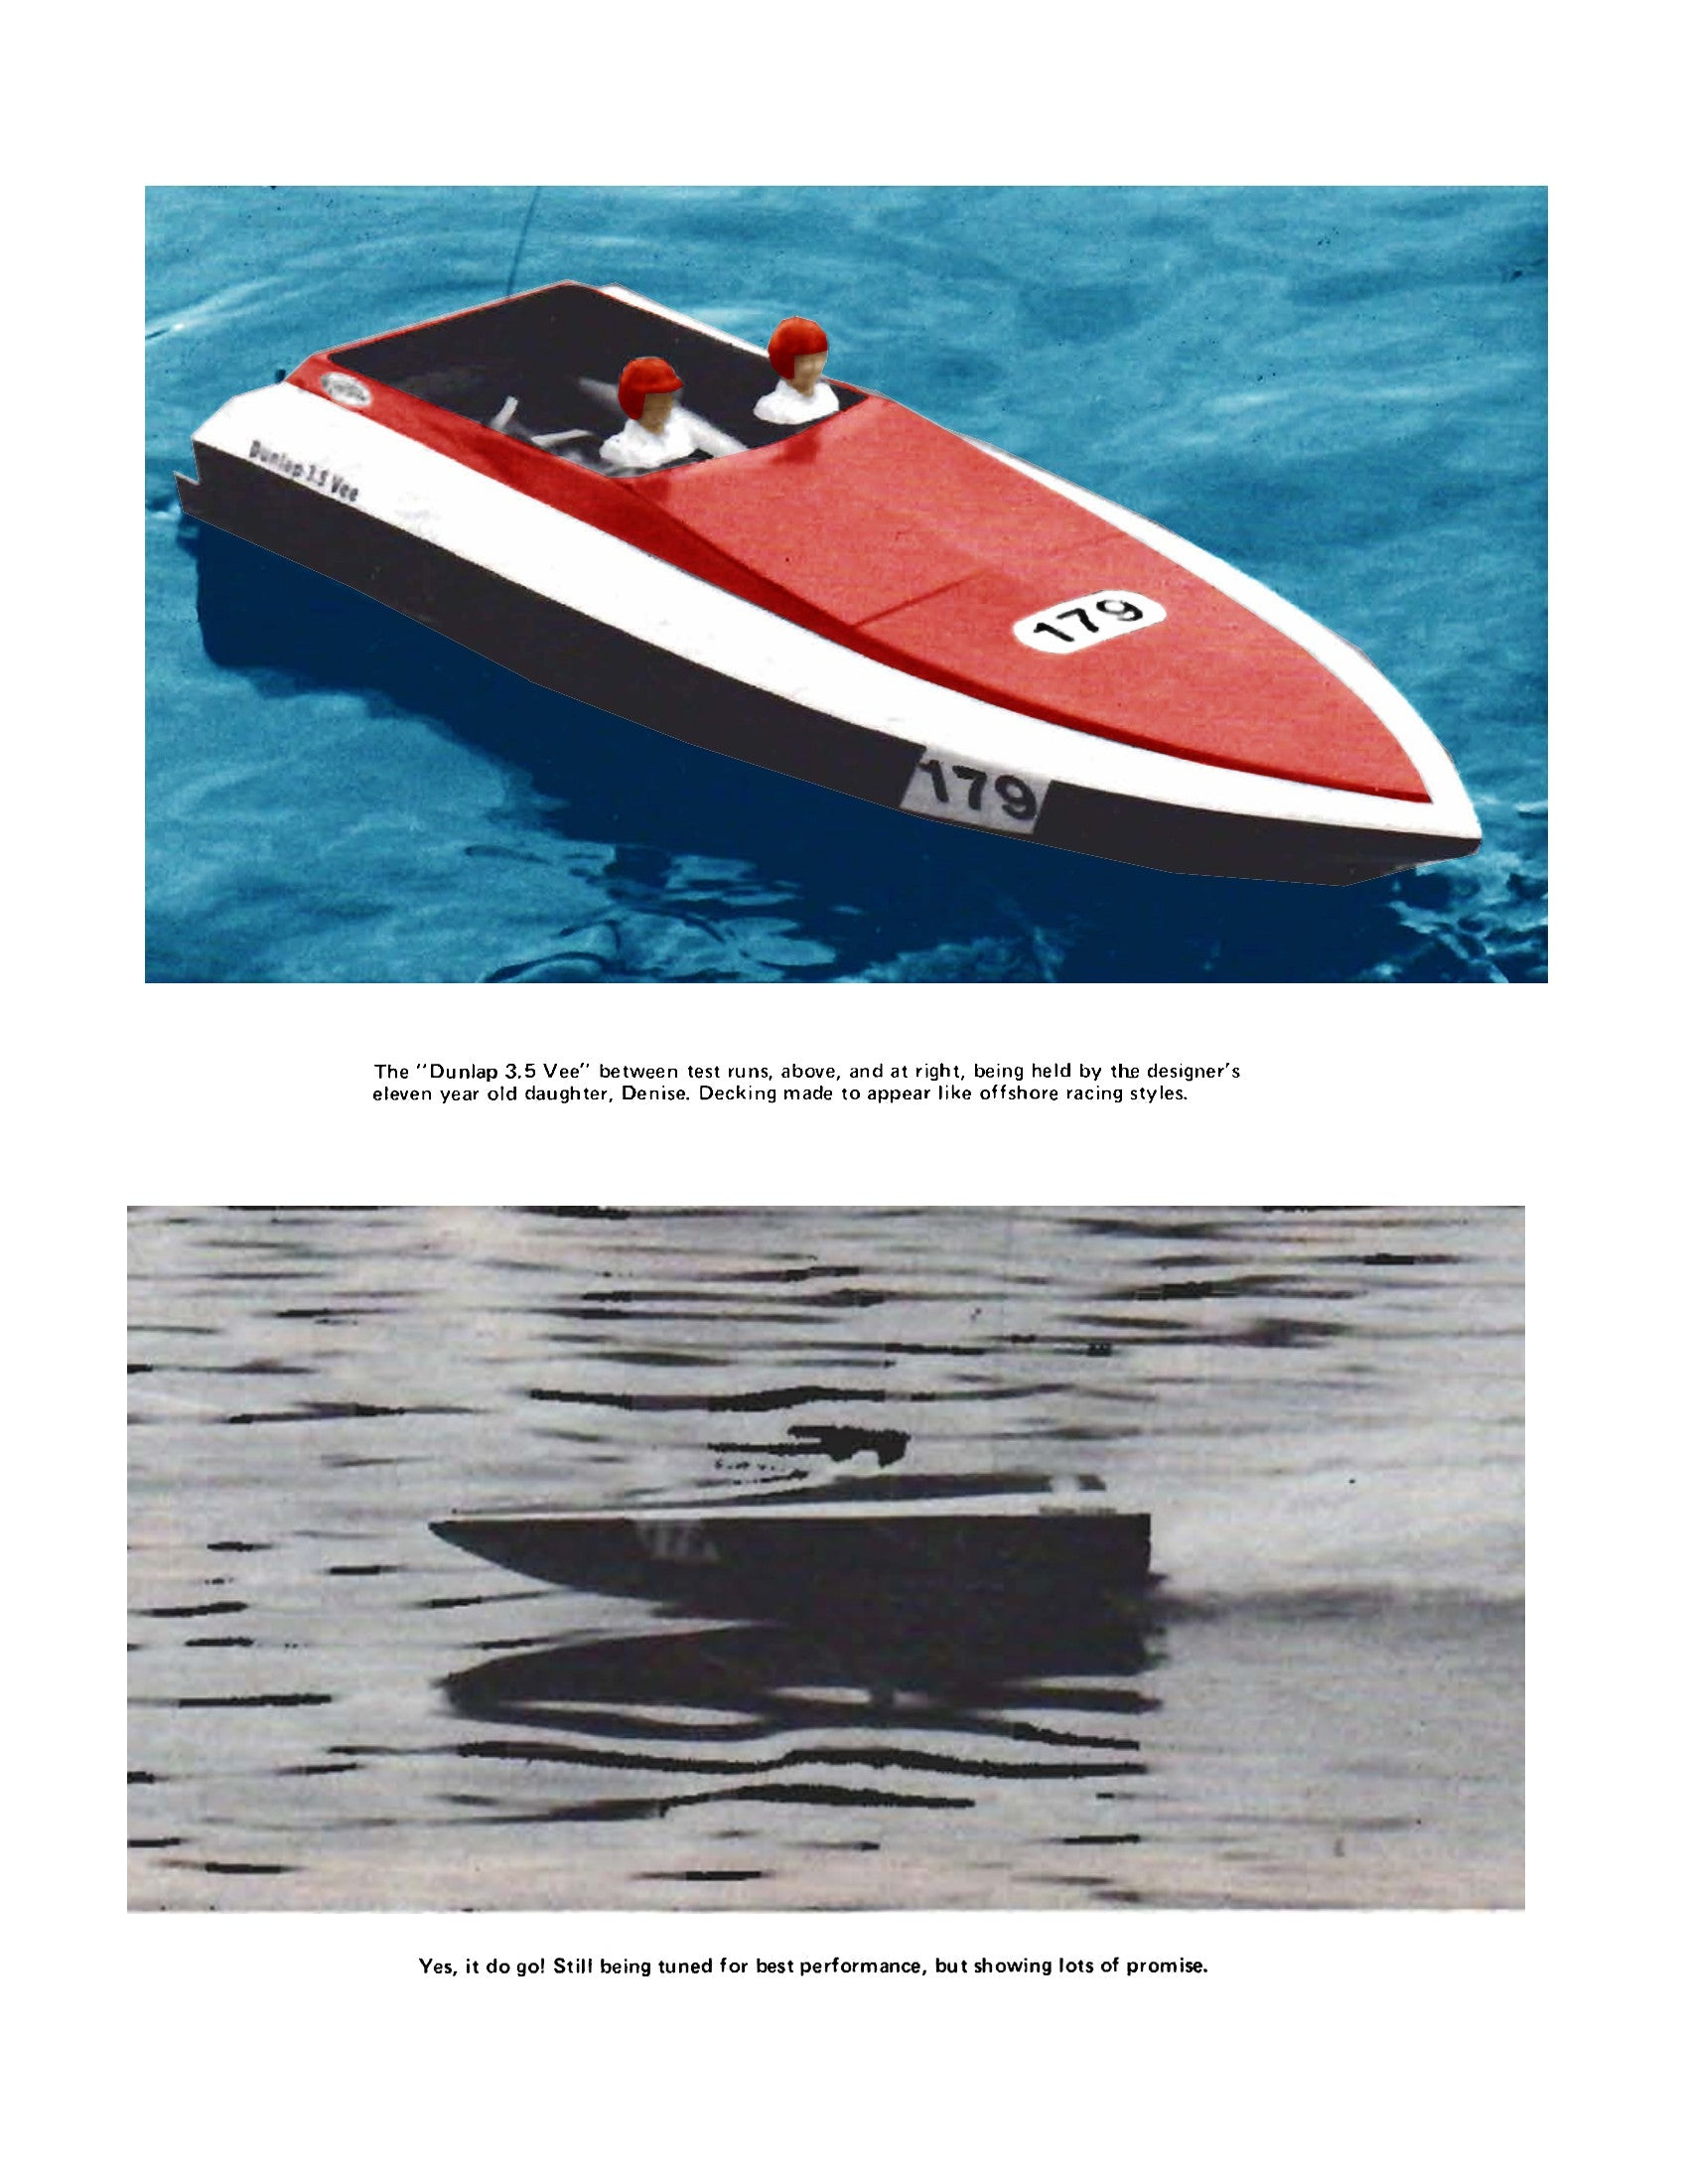 Digital full size plans on Cd offshore racer style DUNLAP 3.5 VEE suitable for Radio Control